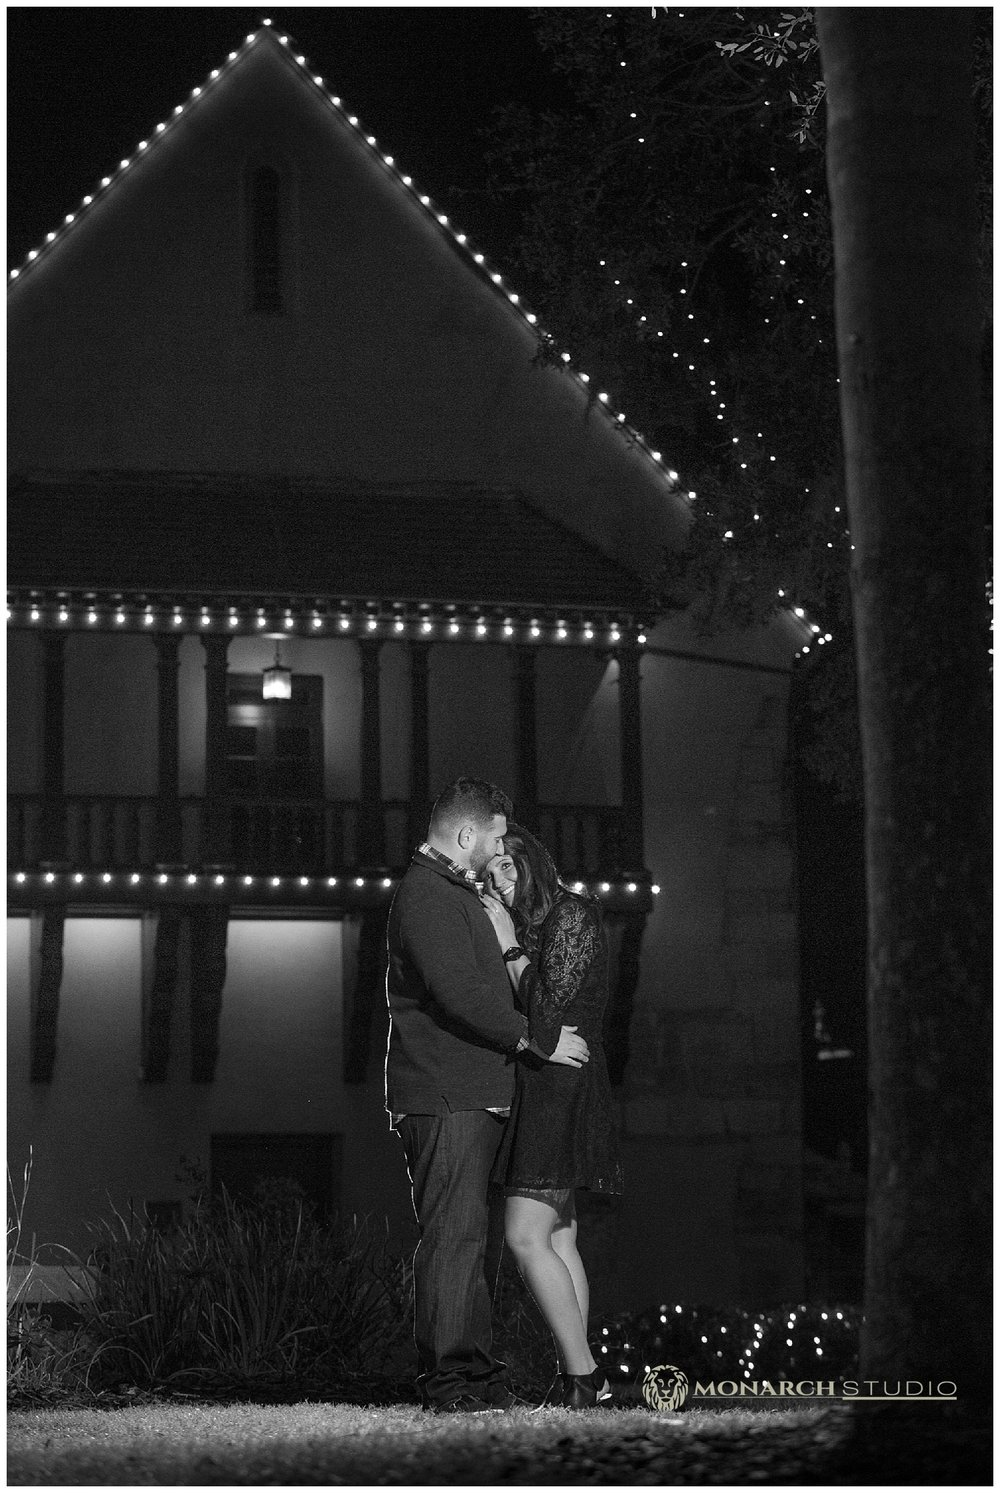 St. Augustine Night of Lights Proposal-190.JPG